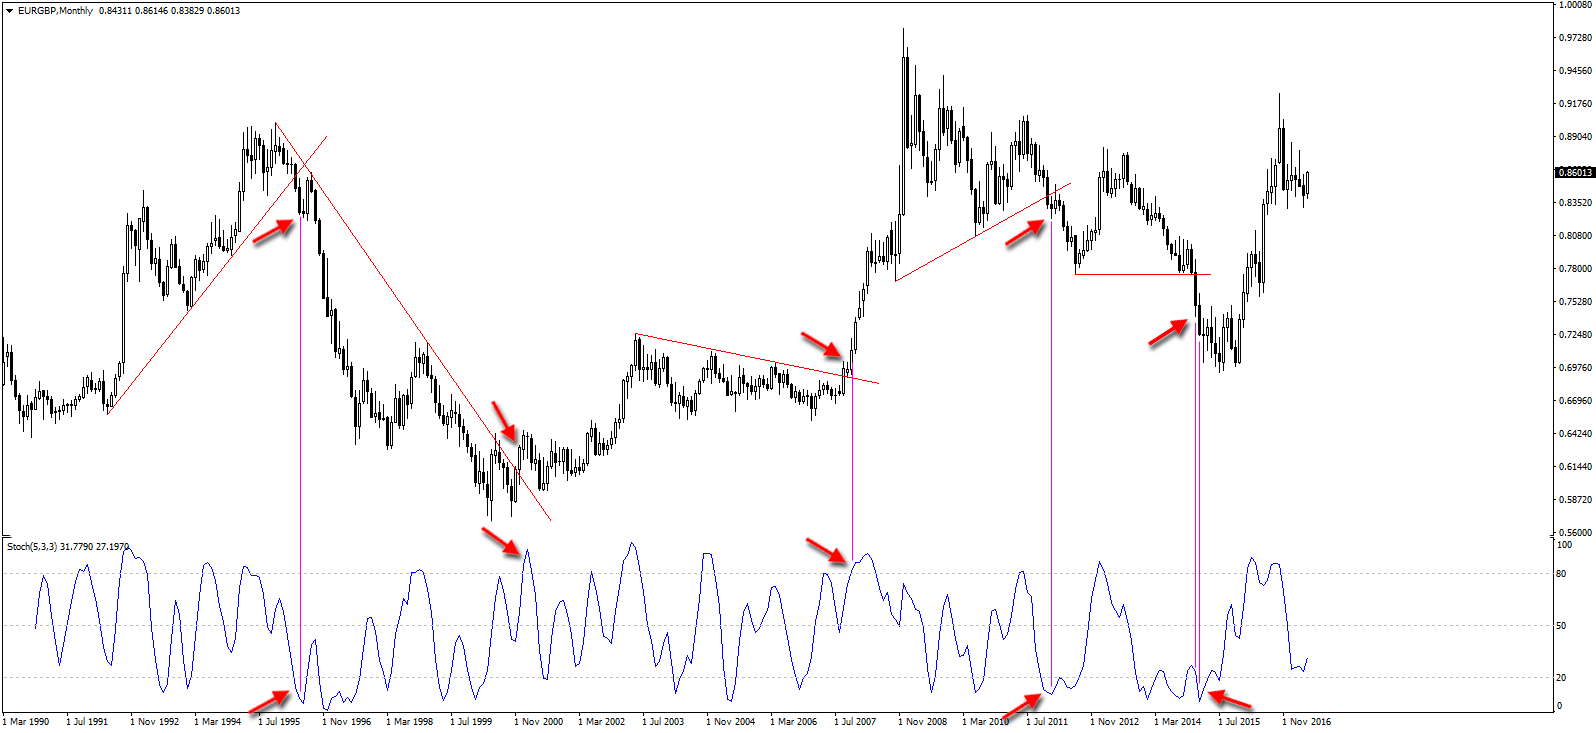 Stochastic Oscillator on EURGBP Monthly Chart